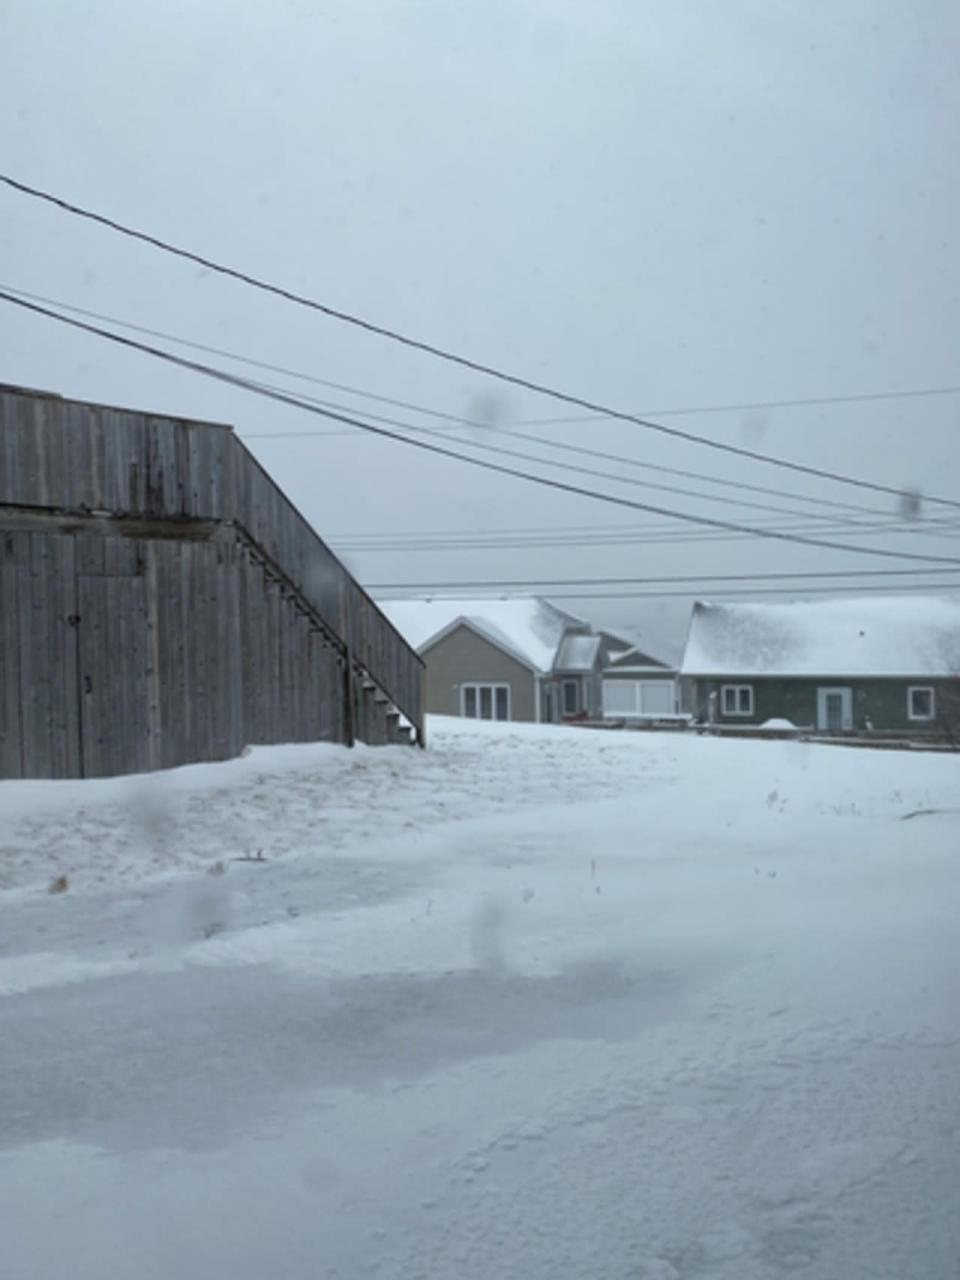 Blowing snow, howling winds create hazardous travel in Newfoundland